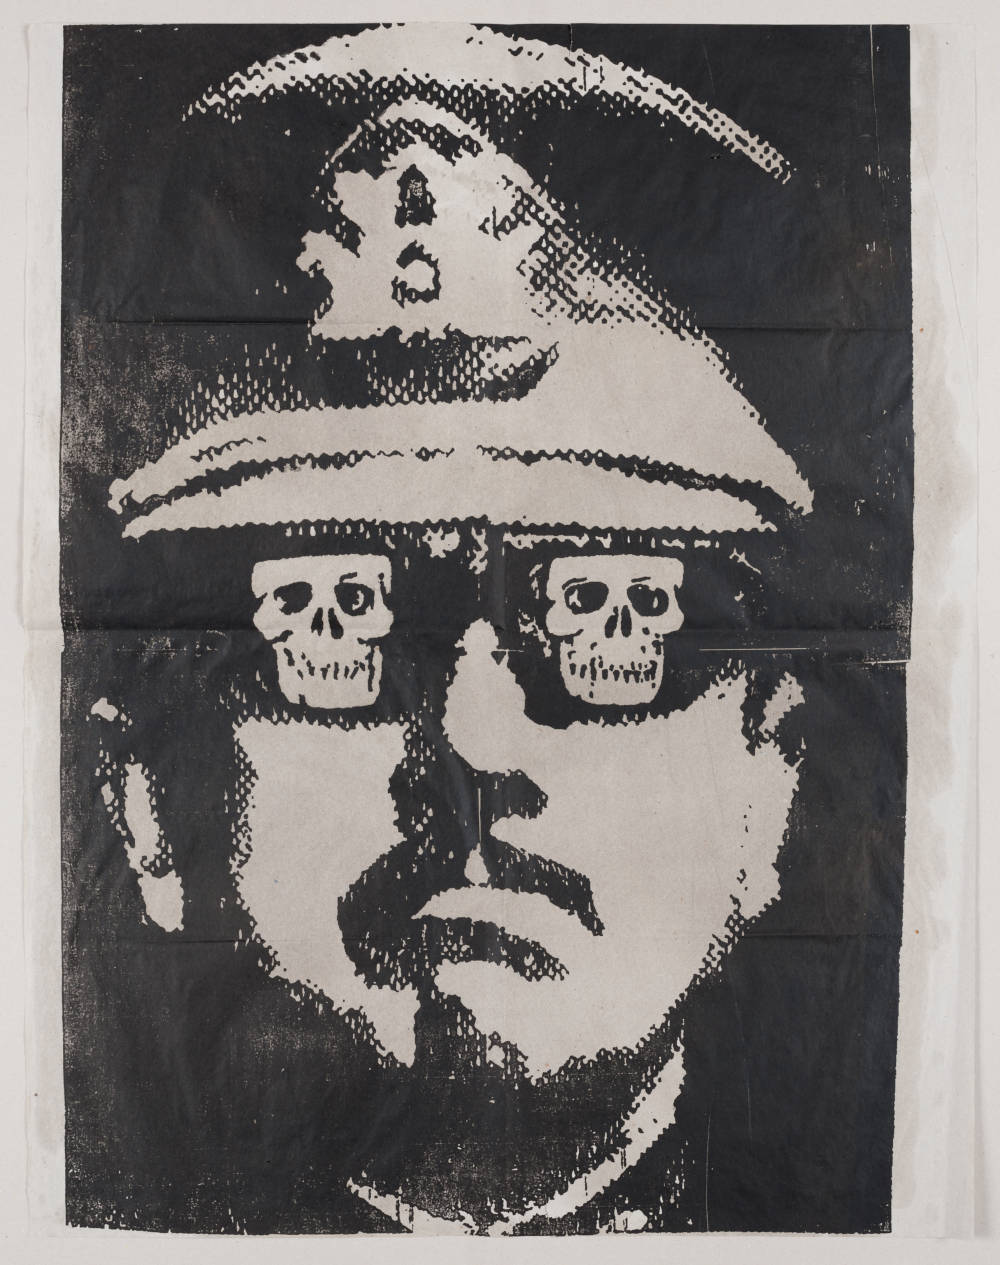 Fernando Bedoya, Pinochet, 1987 © Fernando Bedoya. Courtesy of the artist